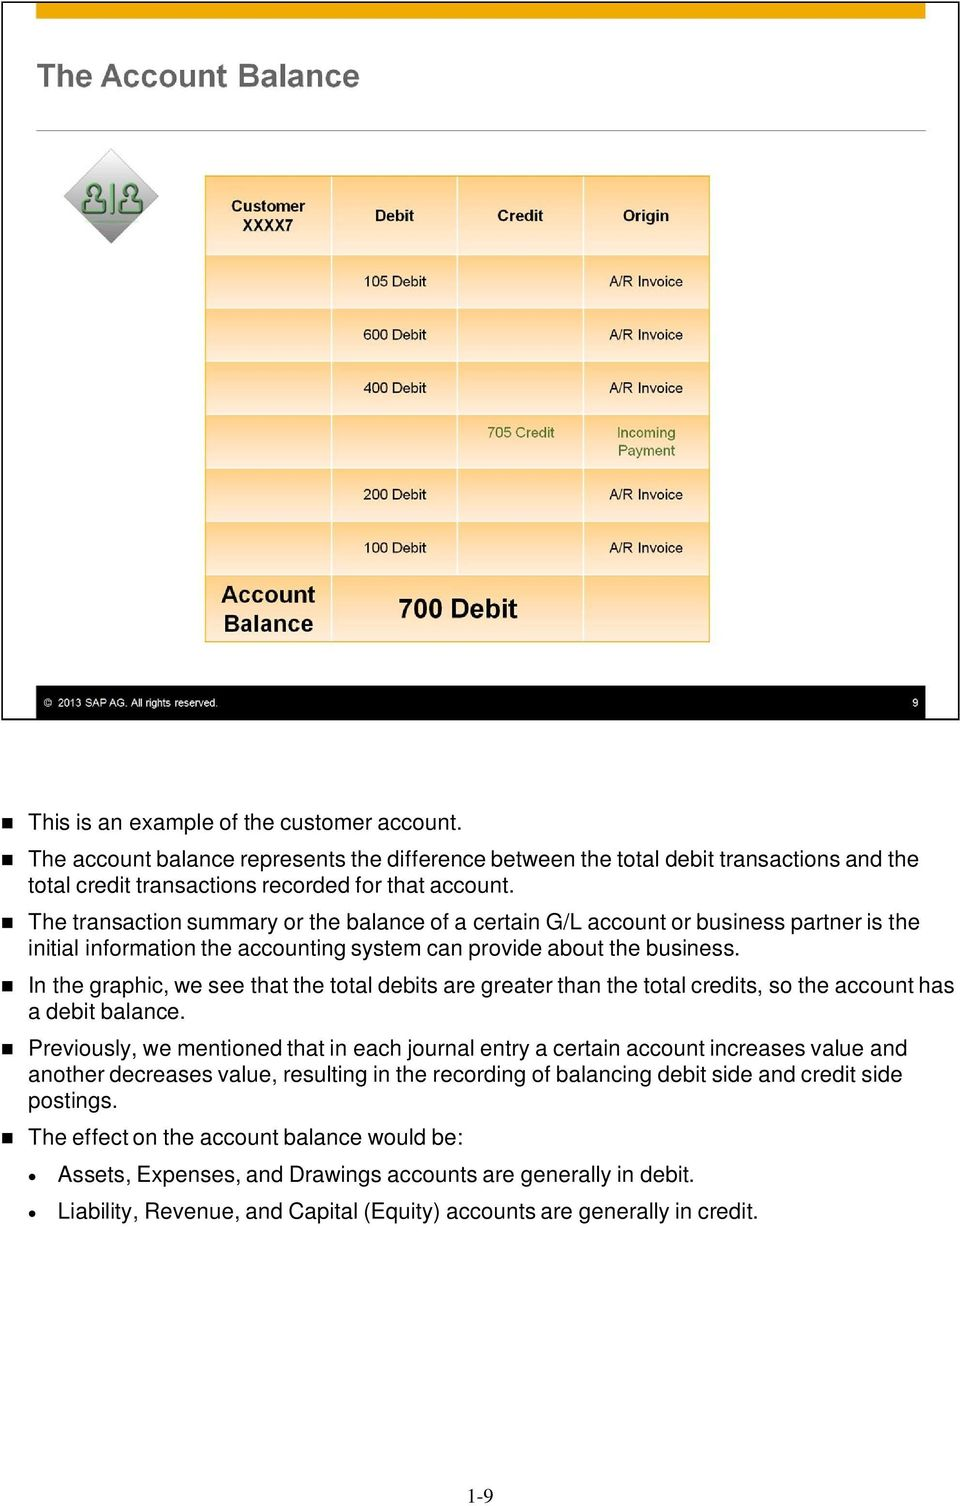 In the graphic, we see that the total debits are greater than the total credits, so the account has a debit balance.